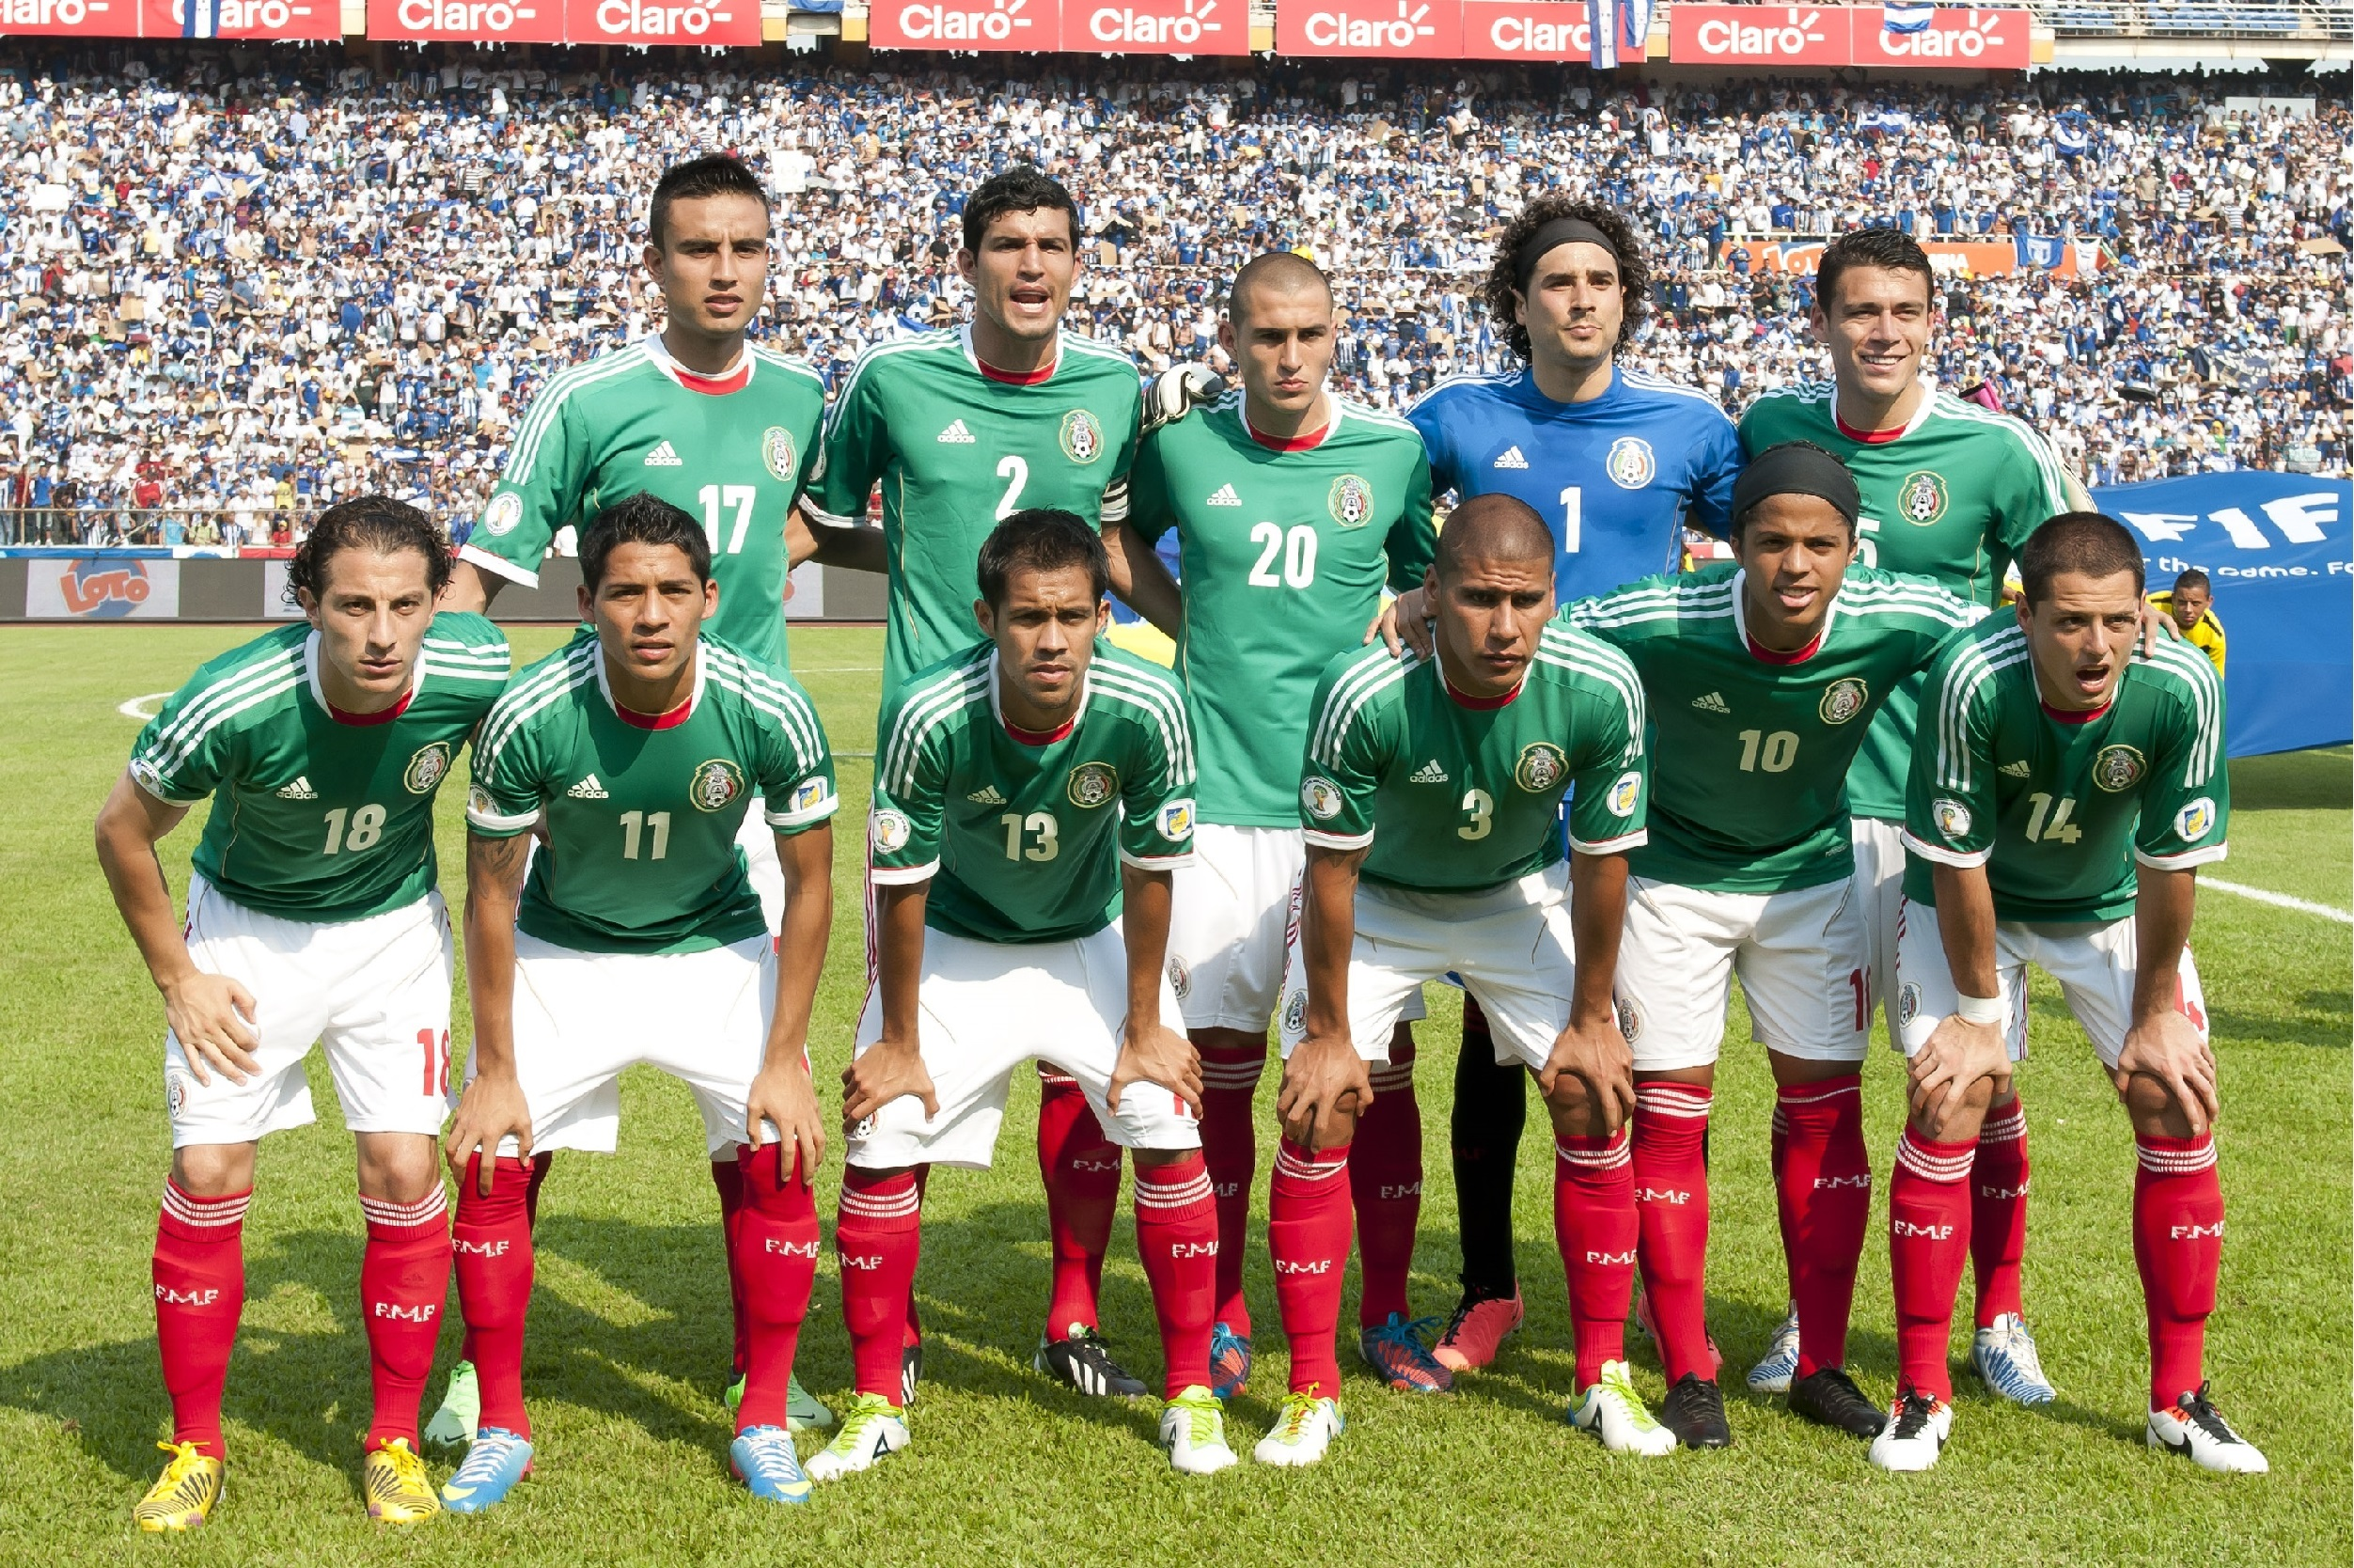 Mexico Football Team World Cup 2014 HD Background Football 2504x1668 8653bae80